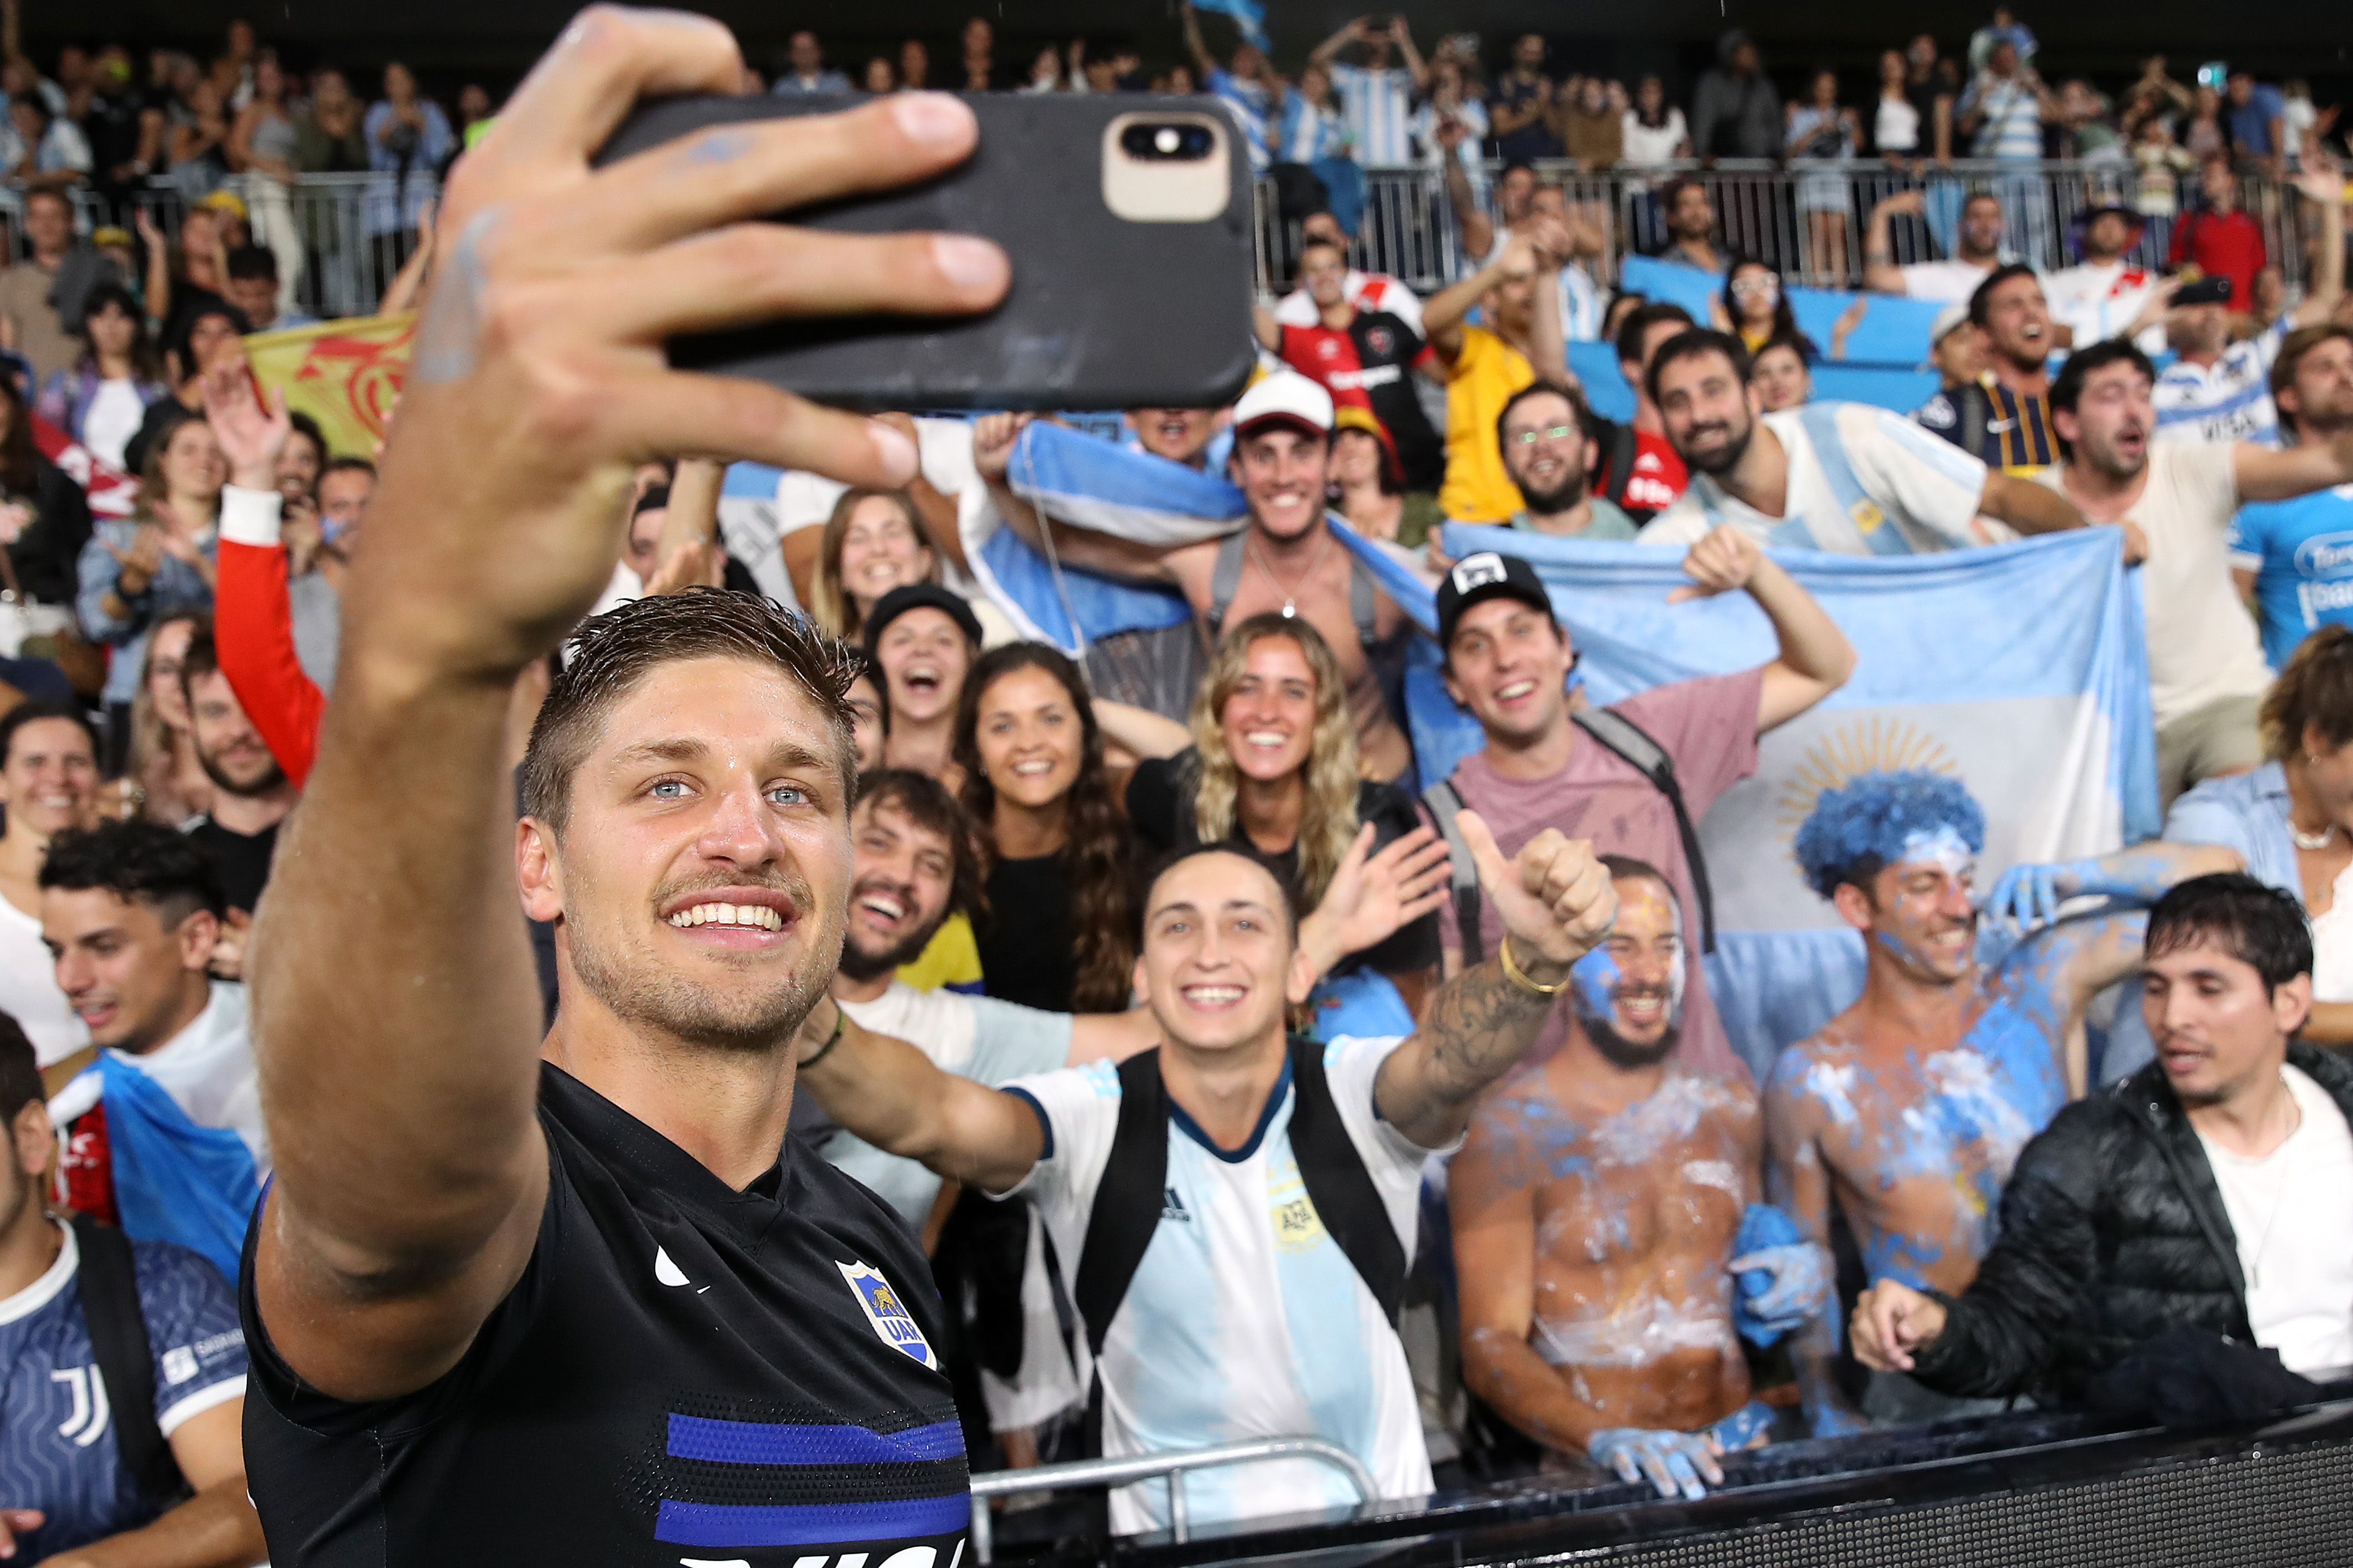 Domingo Miotti of the Pumas takes a photo with fans.